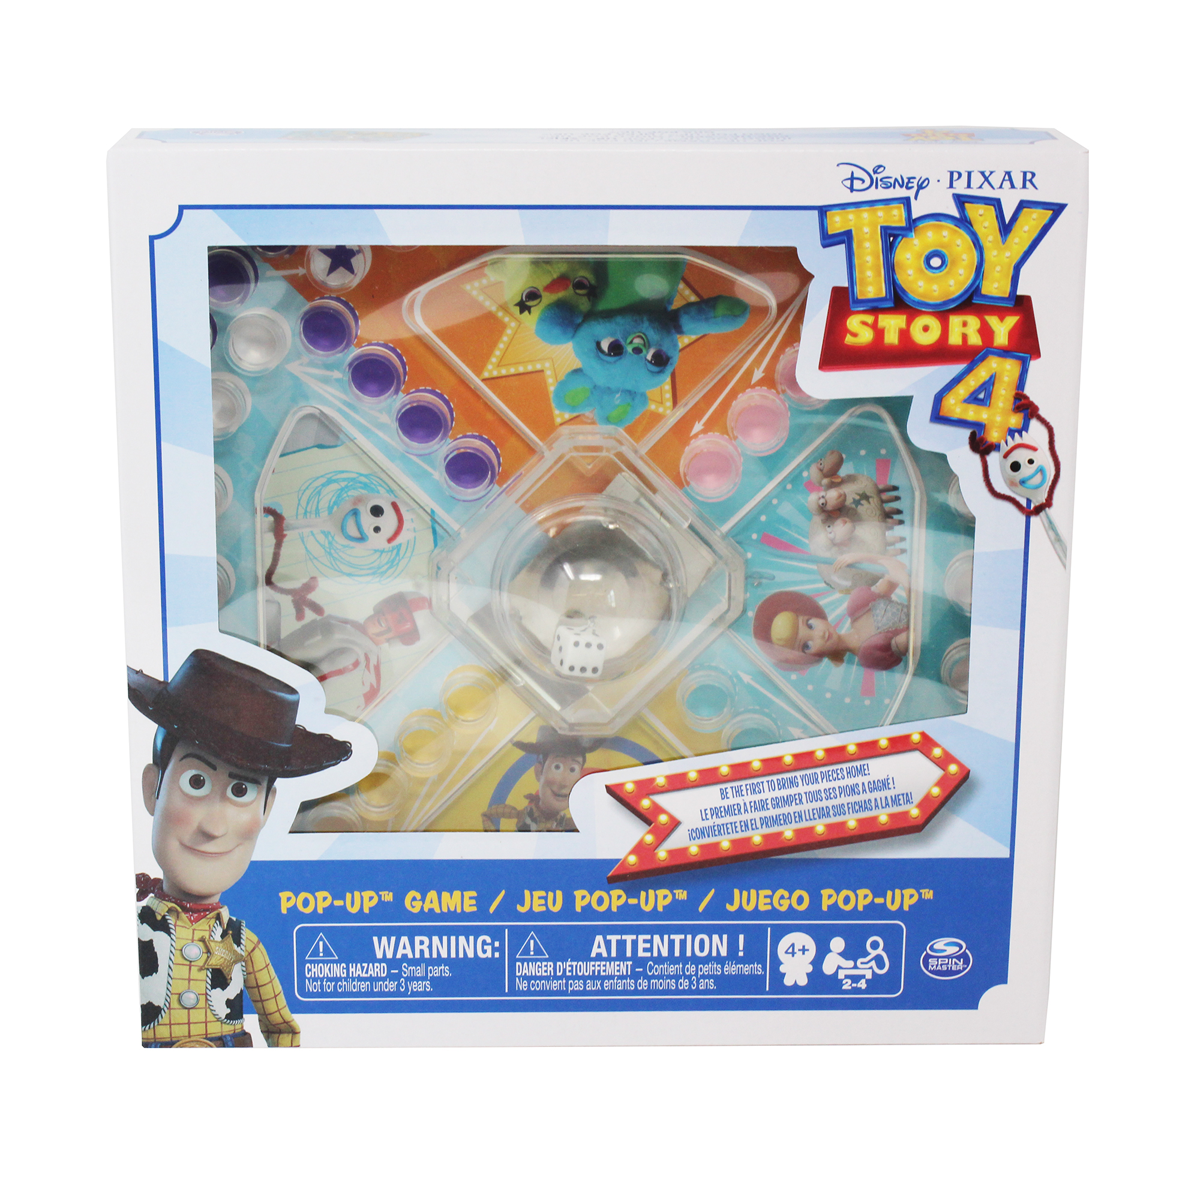 Disney Pixar Toy Story 4 Pop-Up Game from Early Learning Center